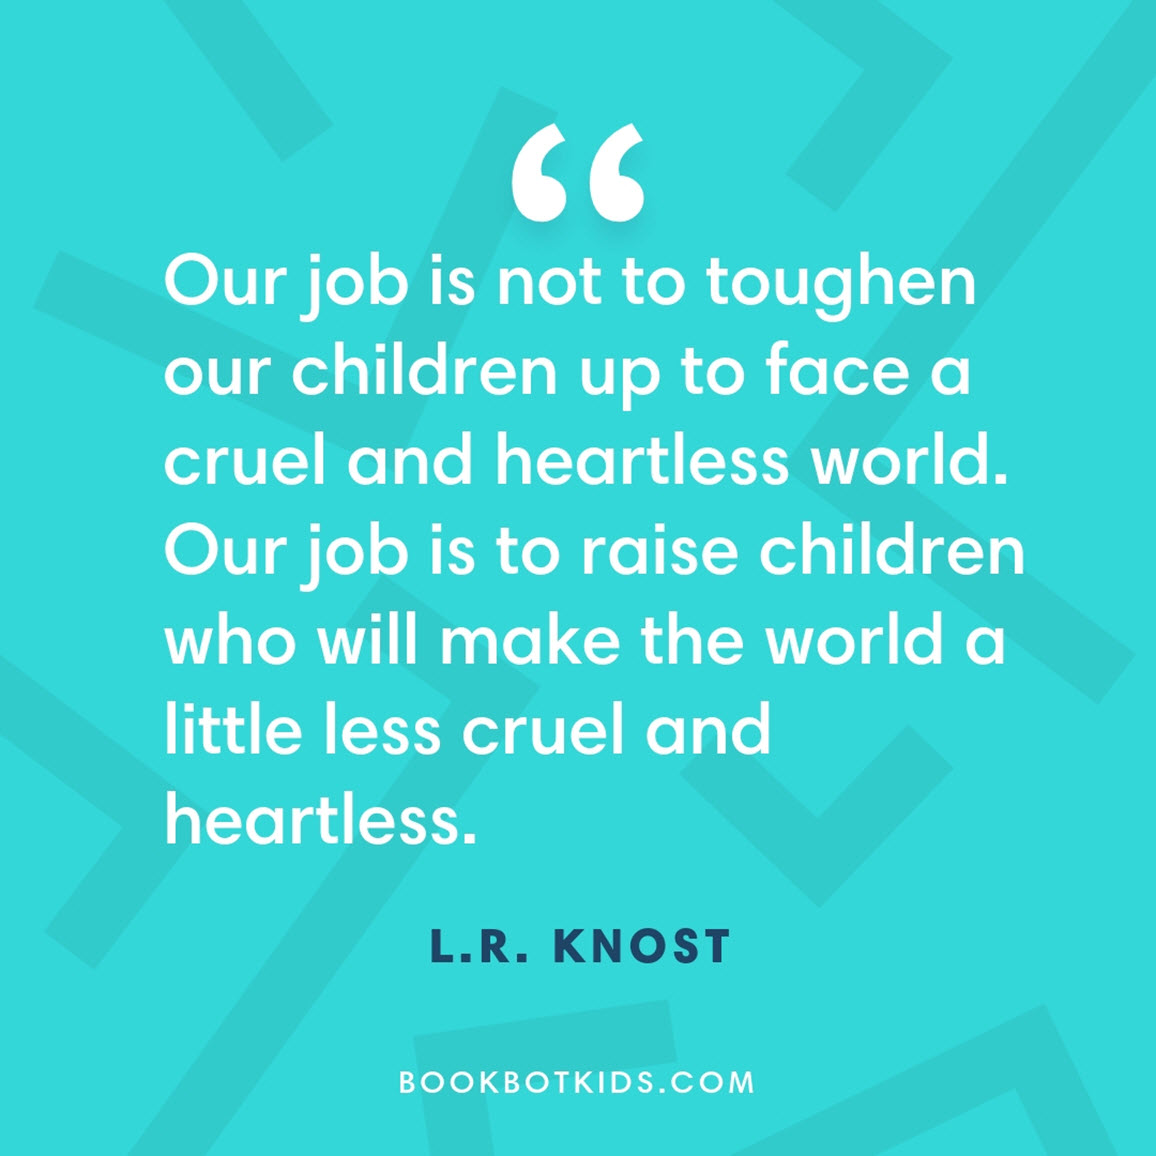 Our job is not to toughen our children up to face a cruel and heartless world. Our job is to raise children who will make the world a little less cruel and heartless. – L.R. Knost